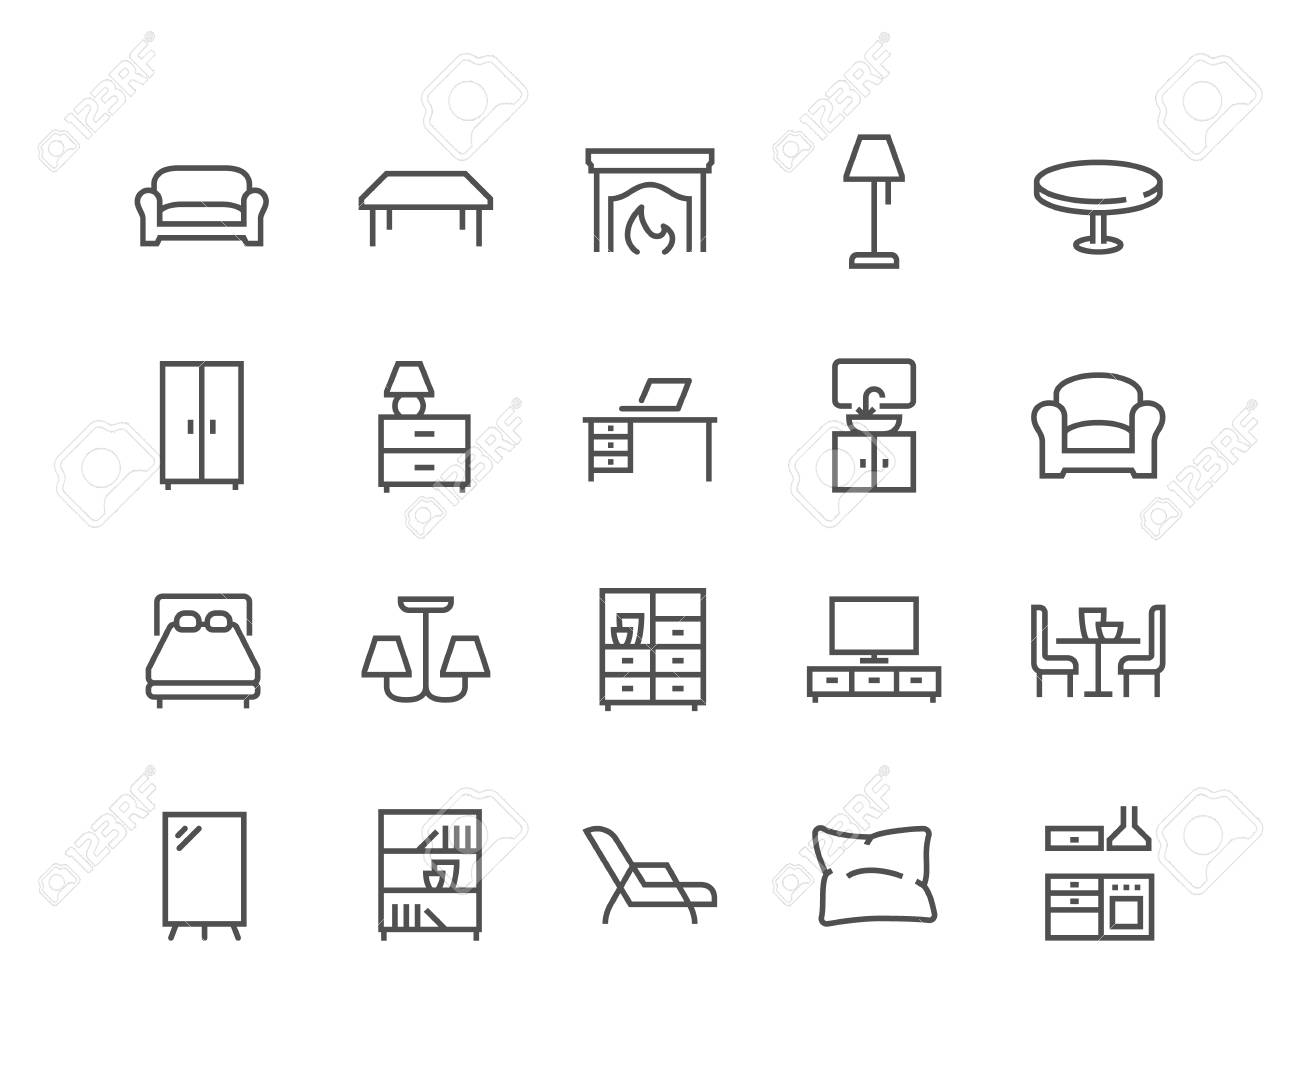 Simple Set of Furniture Related Vector Line Icons. Contains such Icons as Sofa, Table, Floor Light and more. Editable Stroke. 48x48 Pixel Perfect. - 126090366